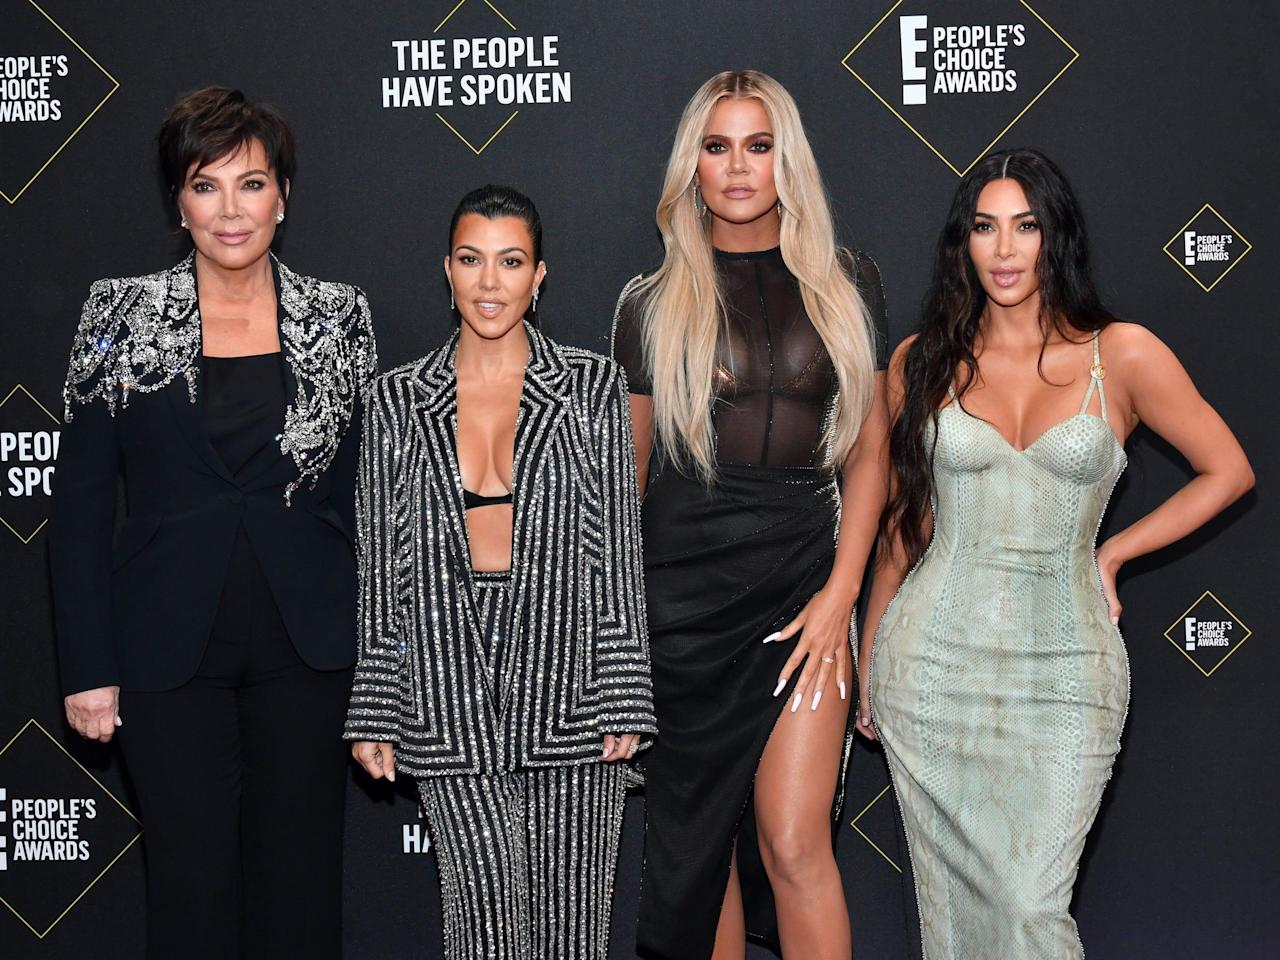 20 surprising things you probably didn't know about 'Keeping Up With the Kardashians'